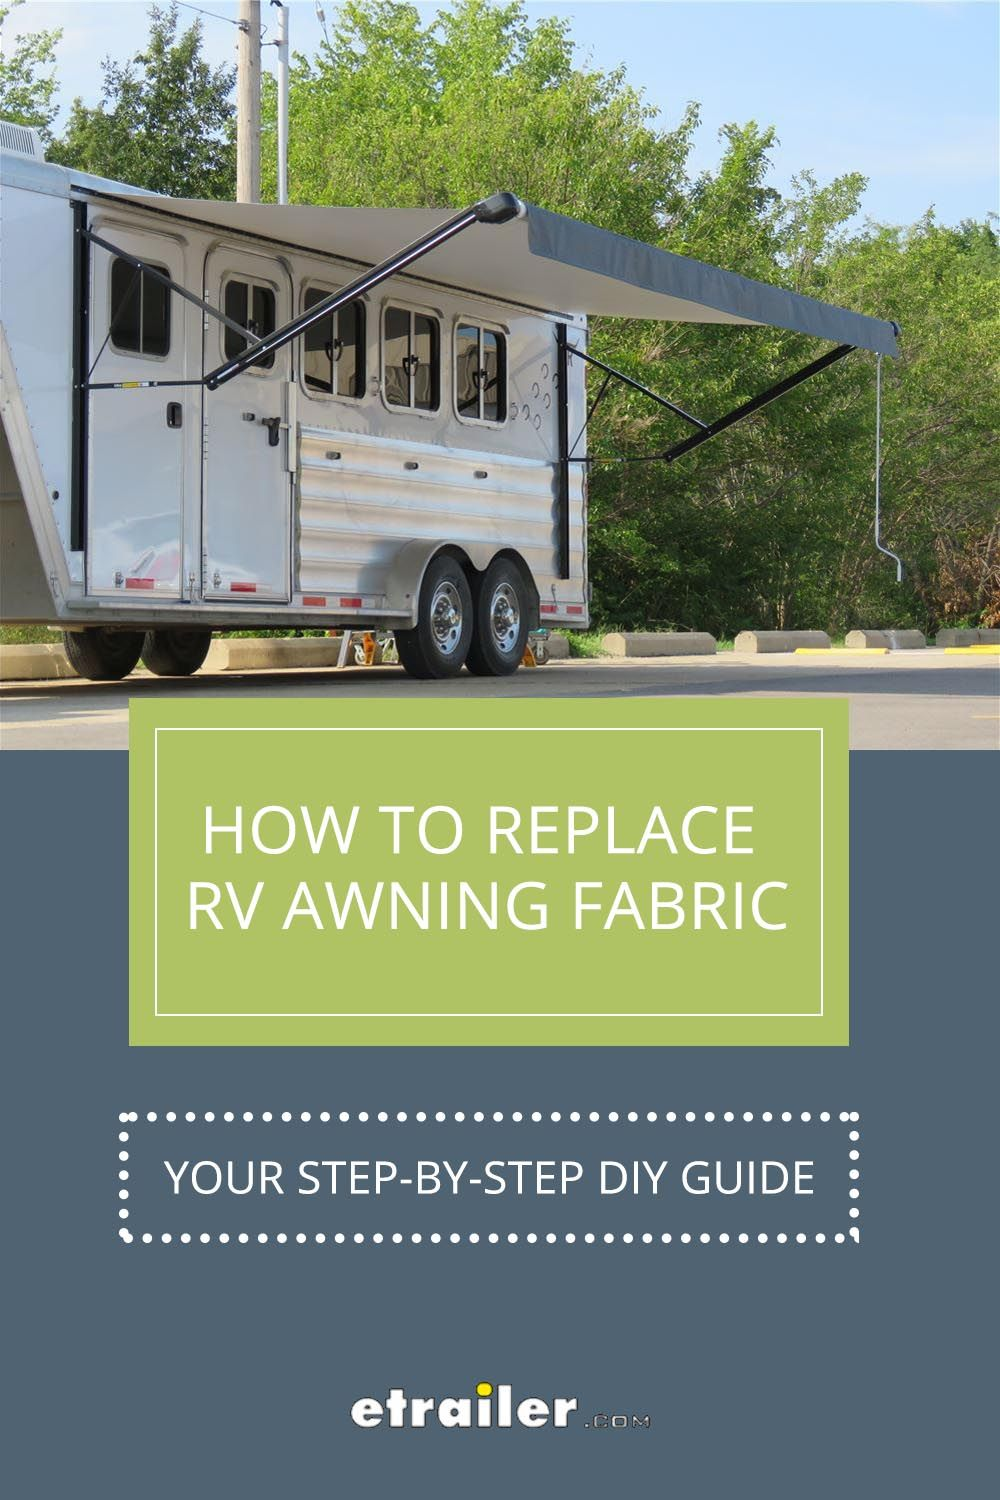 If Your Rv Awning Is Looking A Little Shabby These Days It S Time To Replace The Fabric Check Out Our Step By Step Guide In 2020 Rv Awning Fabric Diy Awning Awning